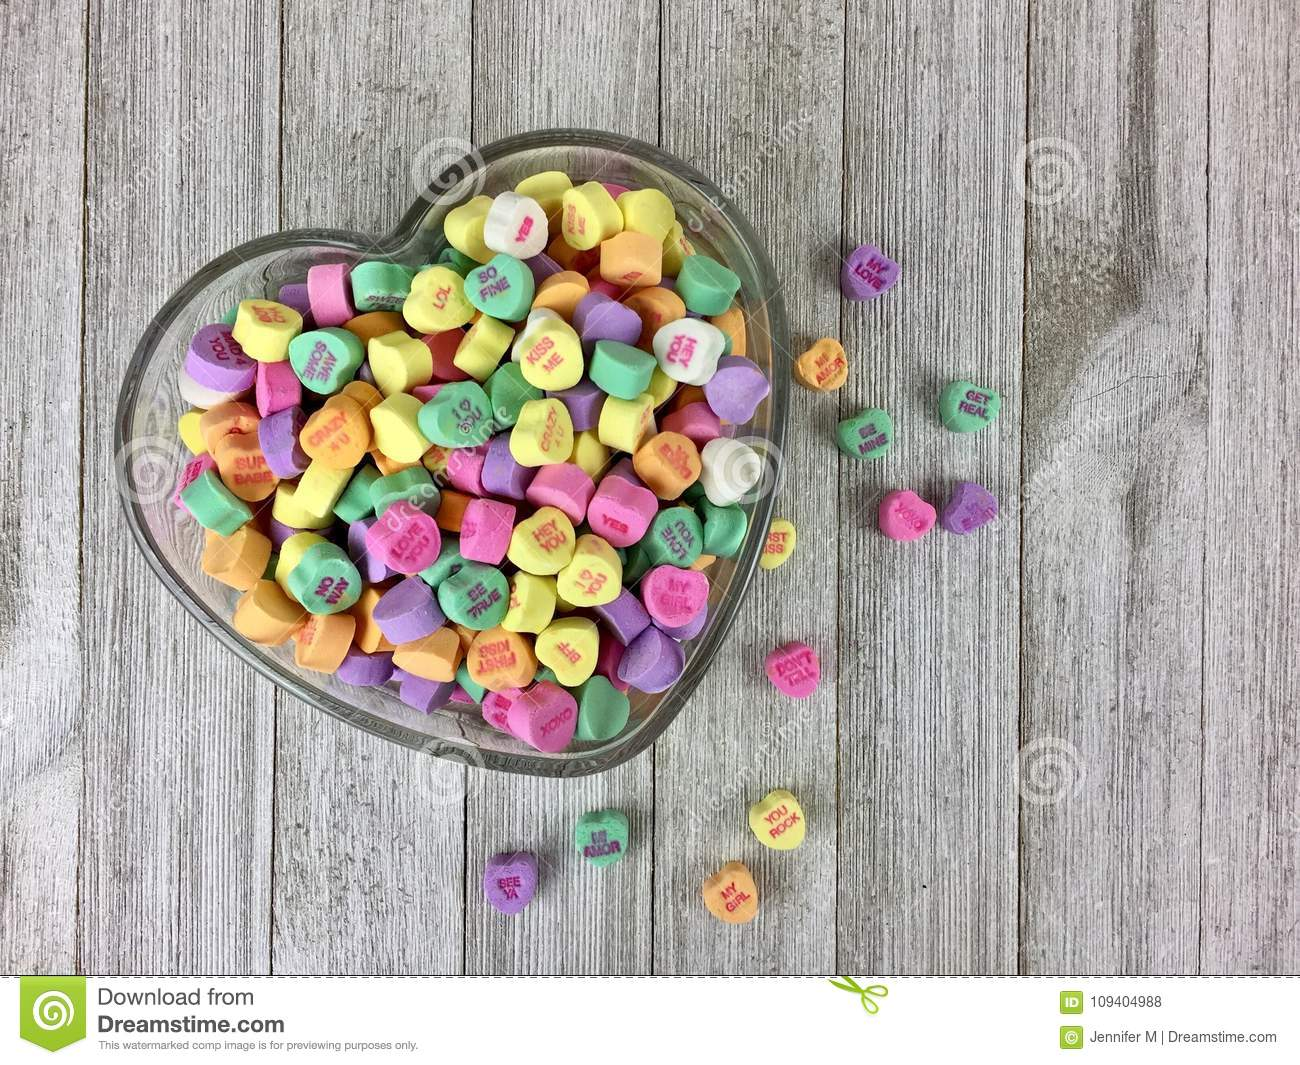 Candy hearts in a heart shaped bowl